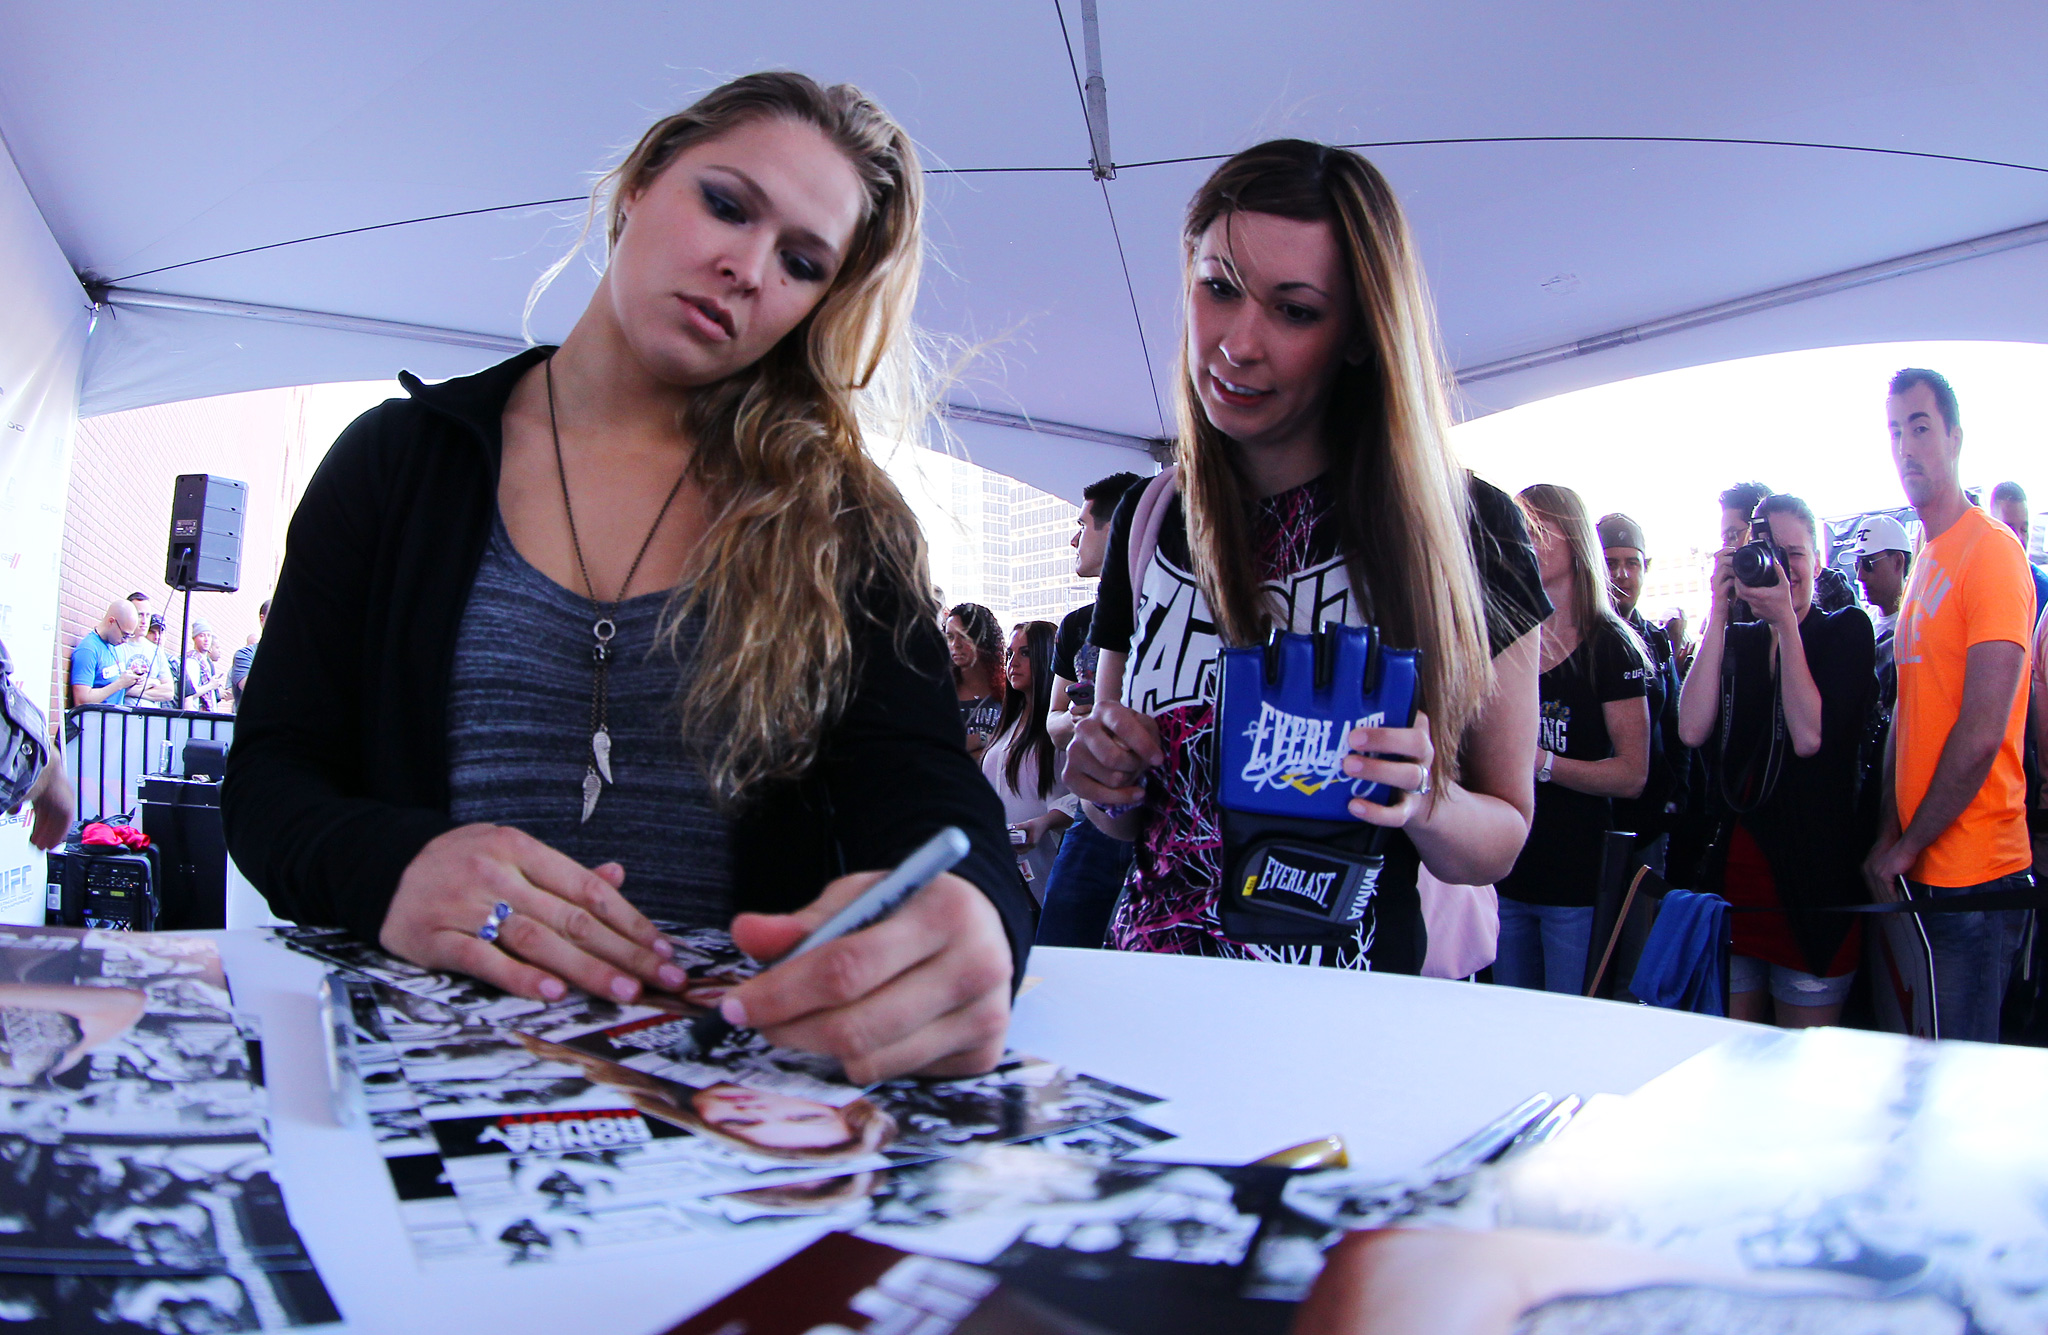 Ronda Rousey with her fans